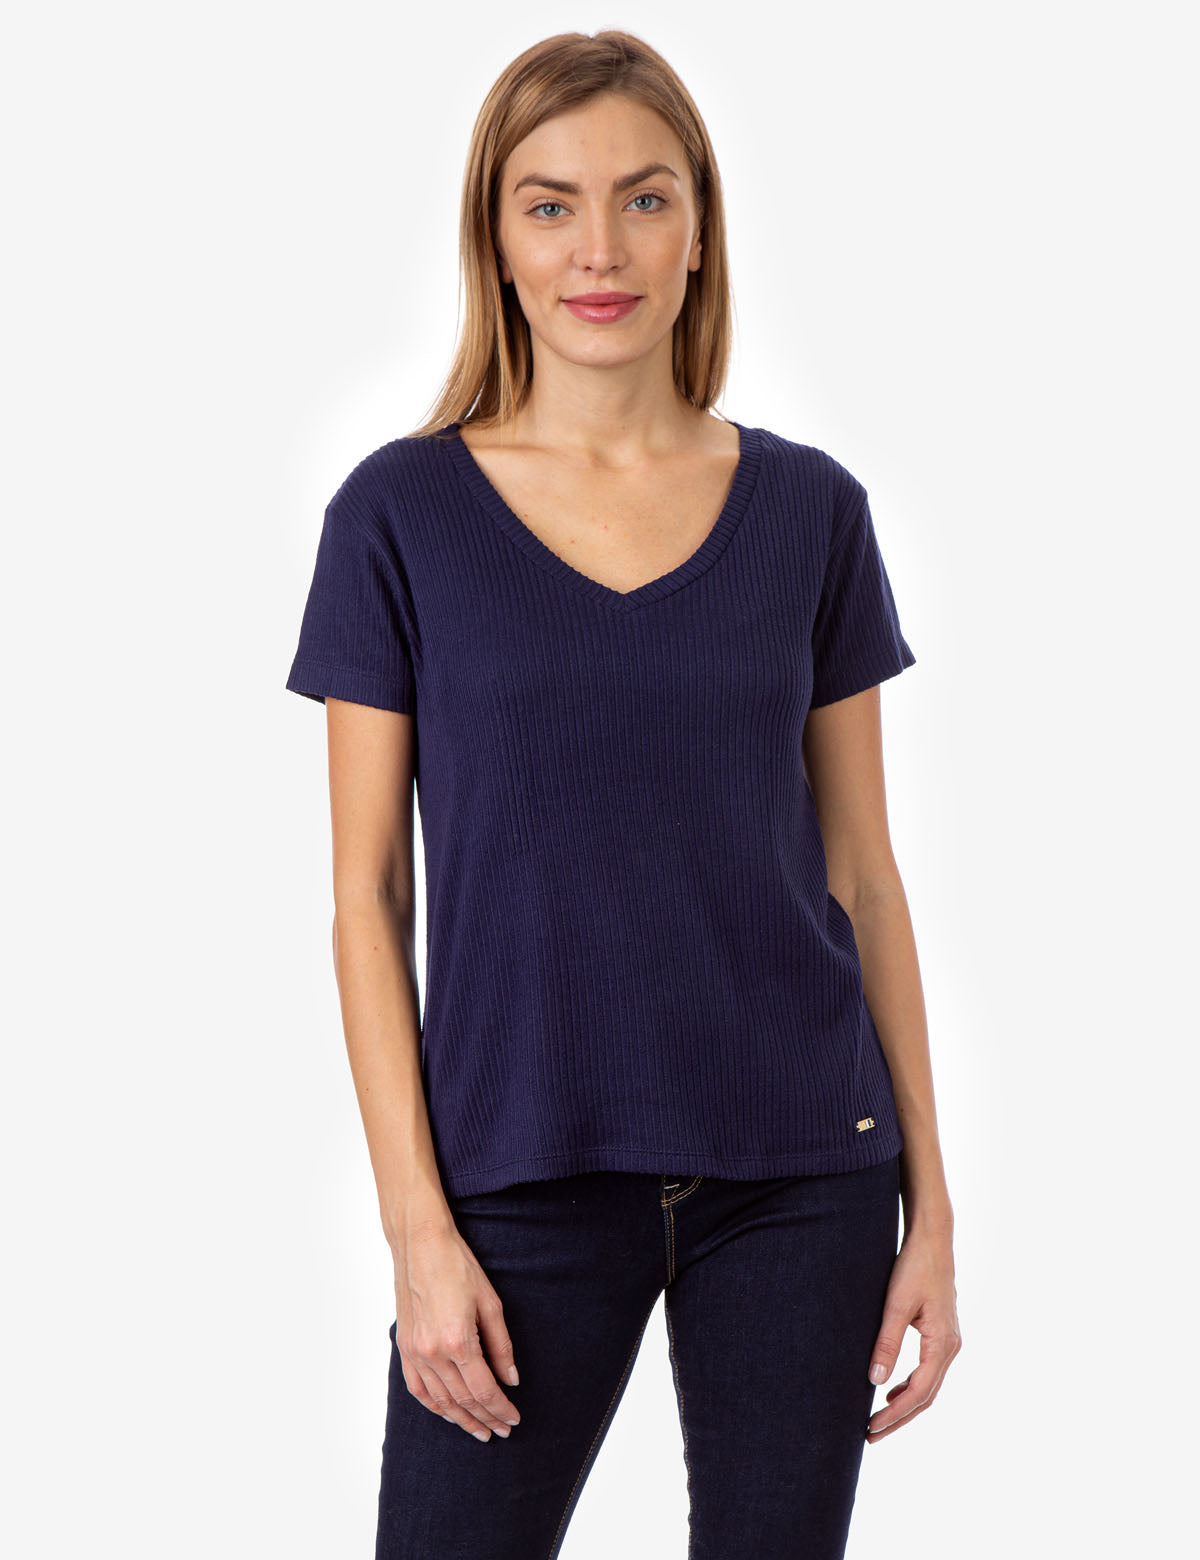 PLUSH RIB V-NECK TOP - U.S. Polo Assn.